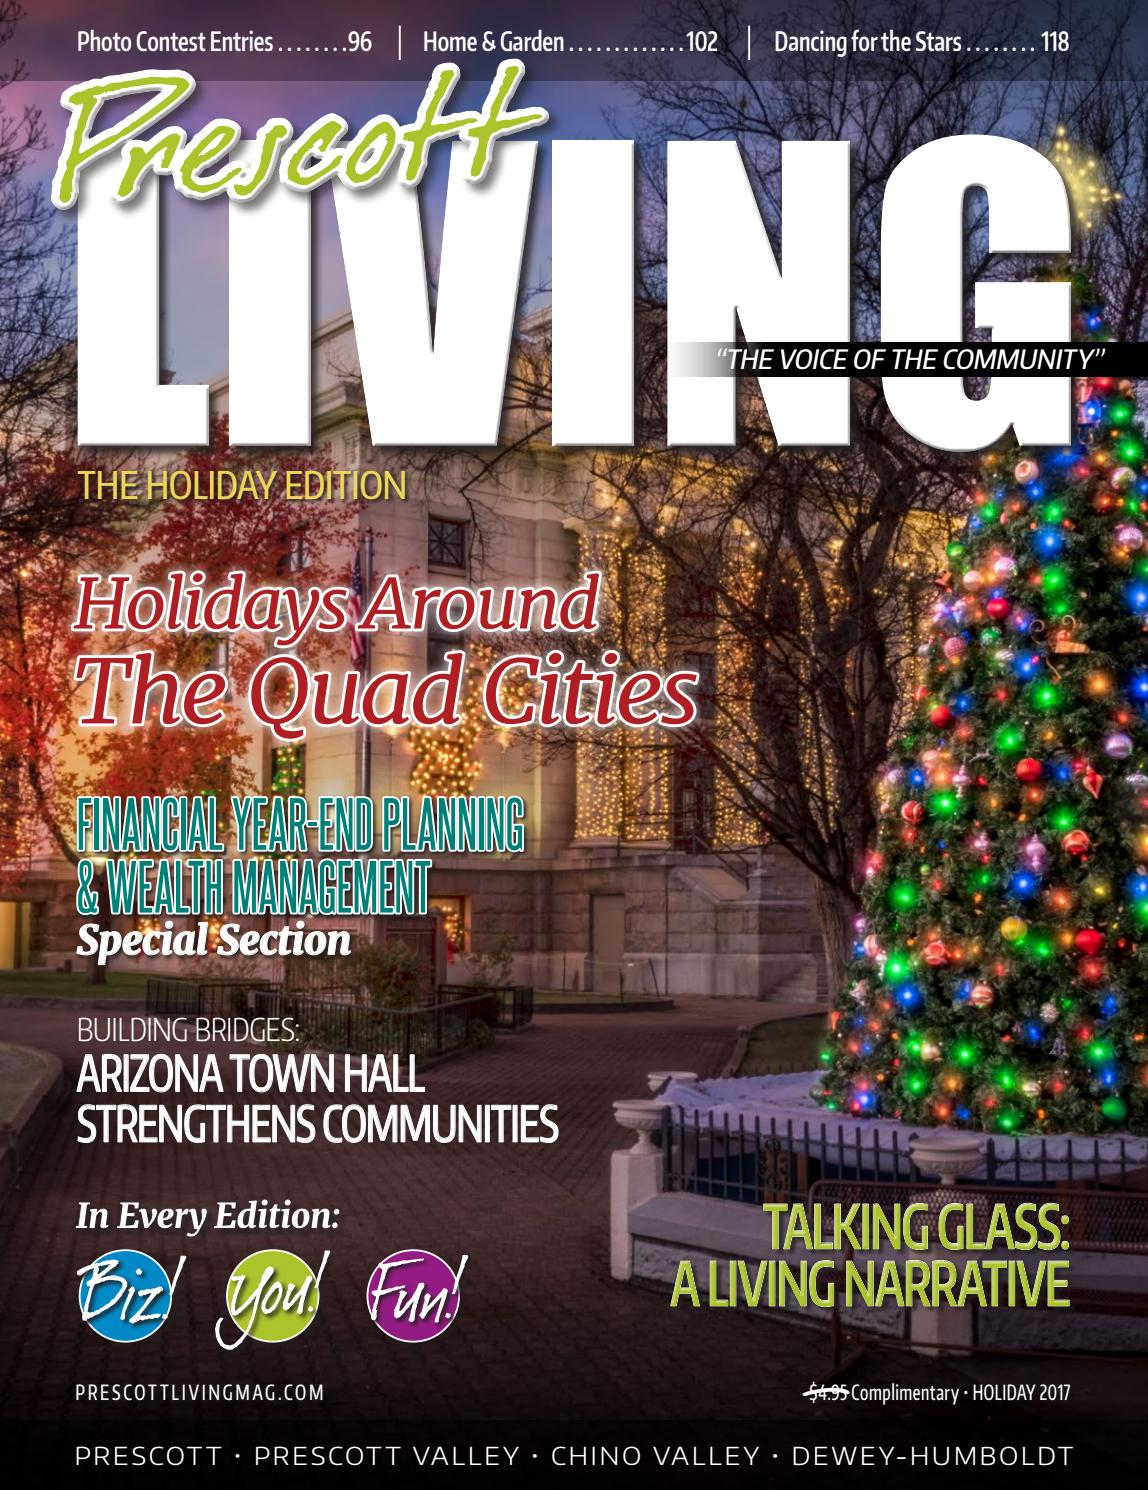 Prescott Living Magazine By Rox Media Group Issuu Led Color Organ Triple Deluxe Construction Circuit